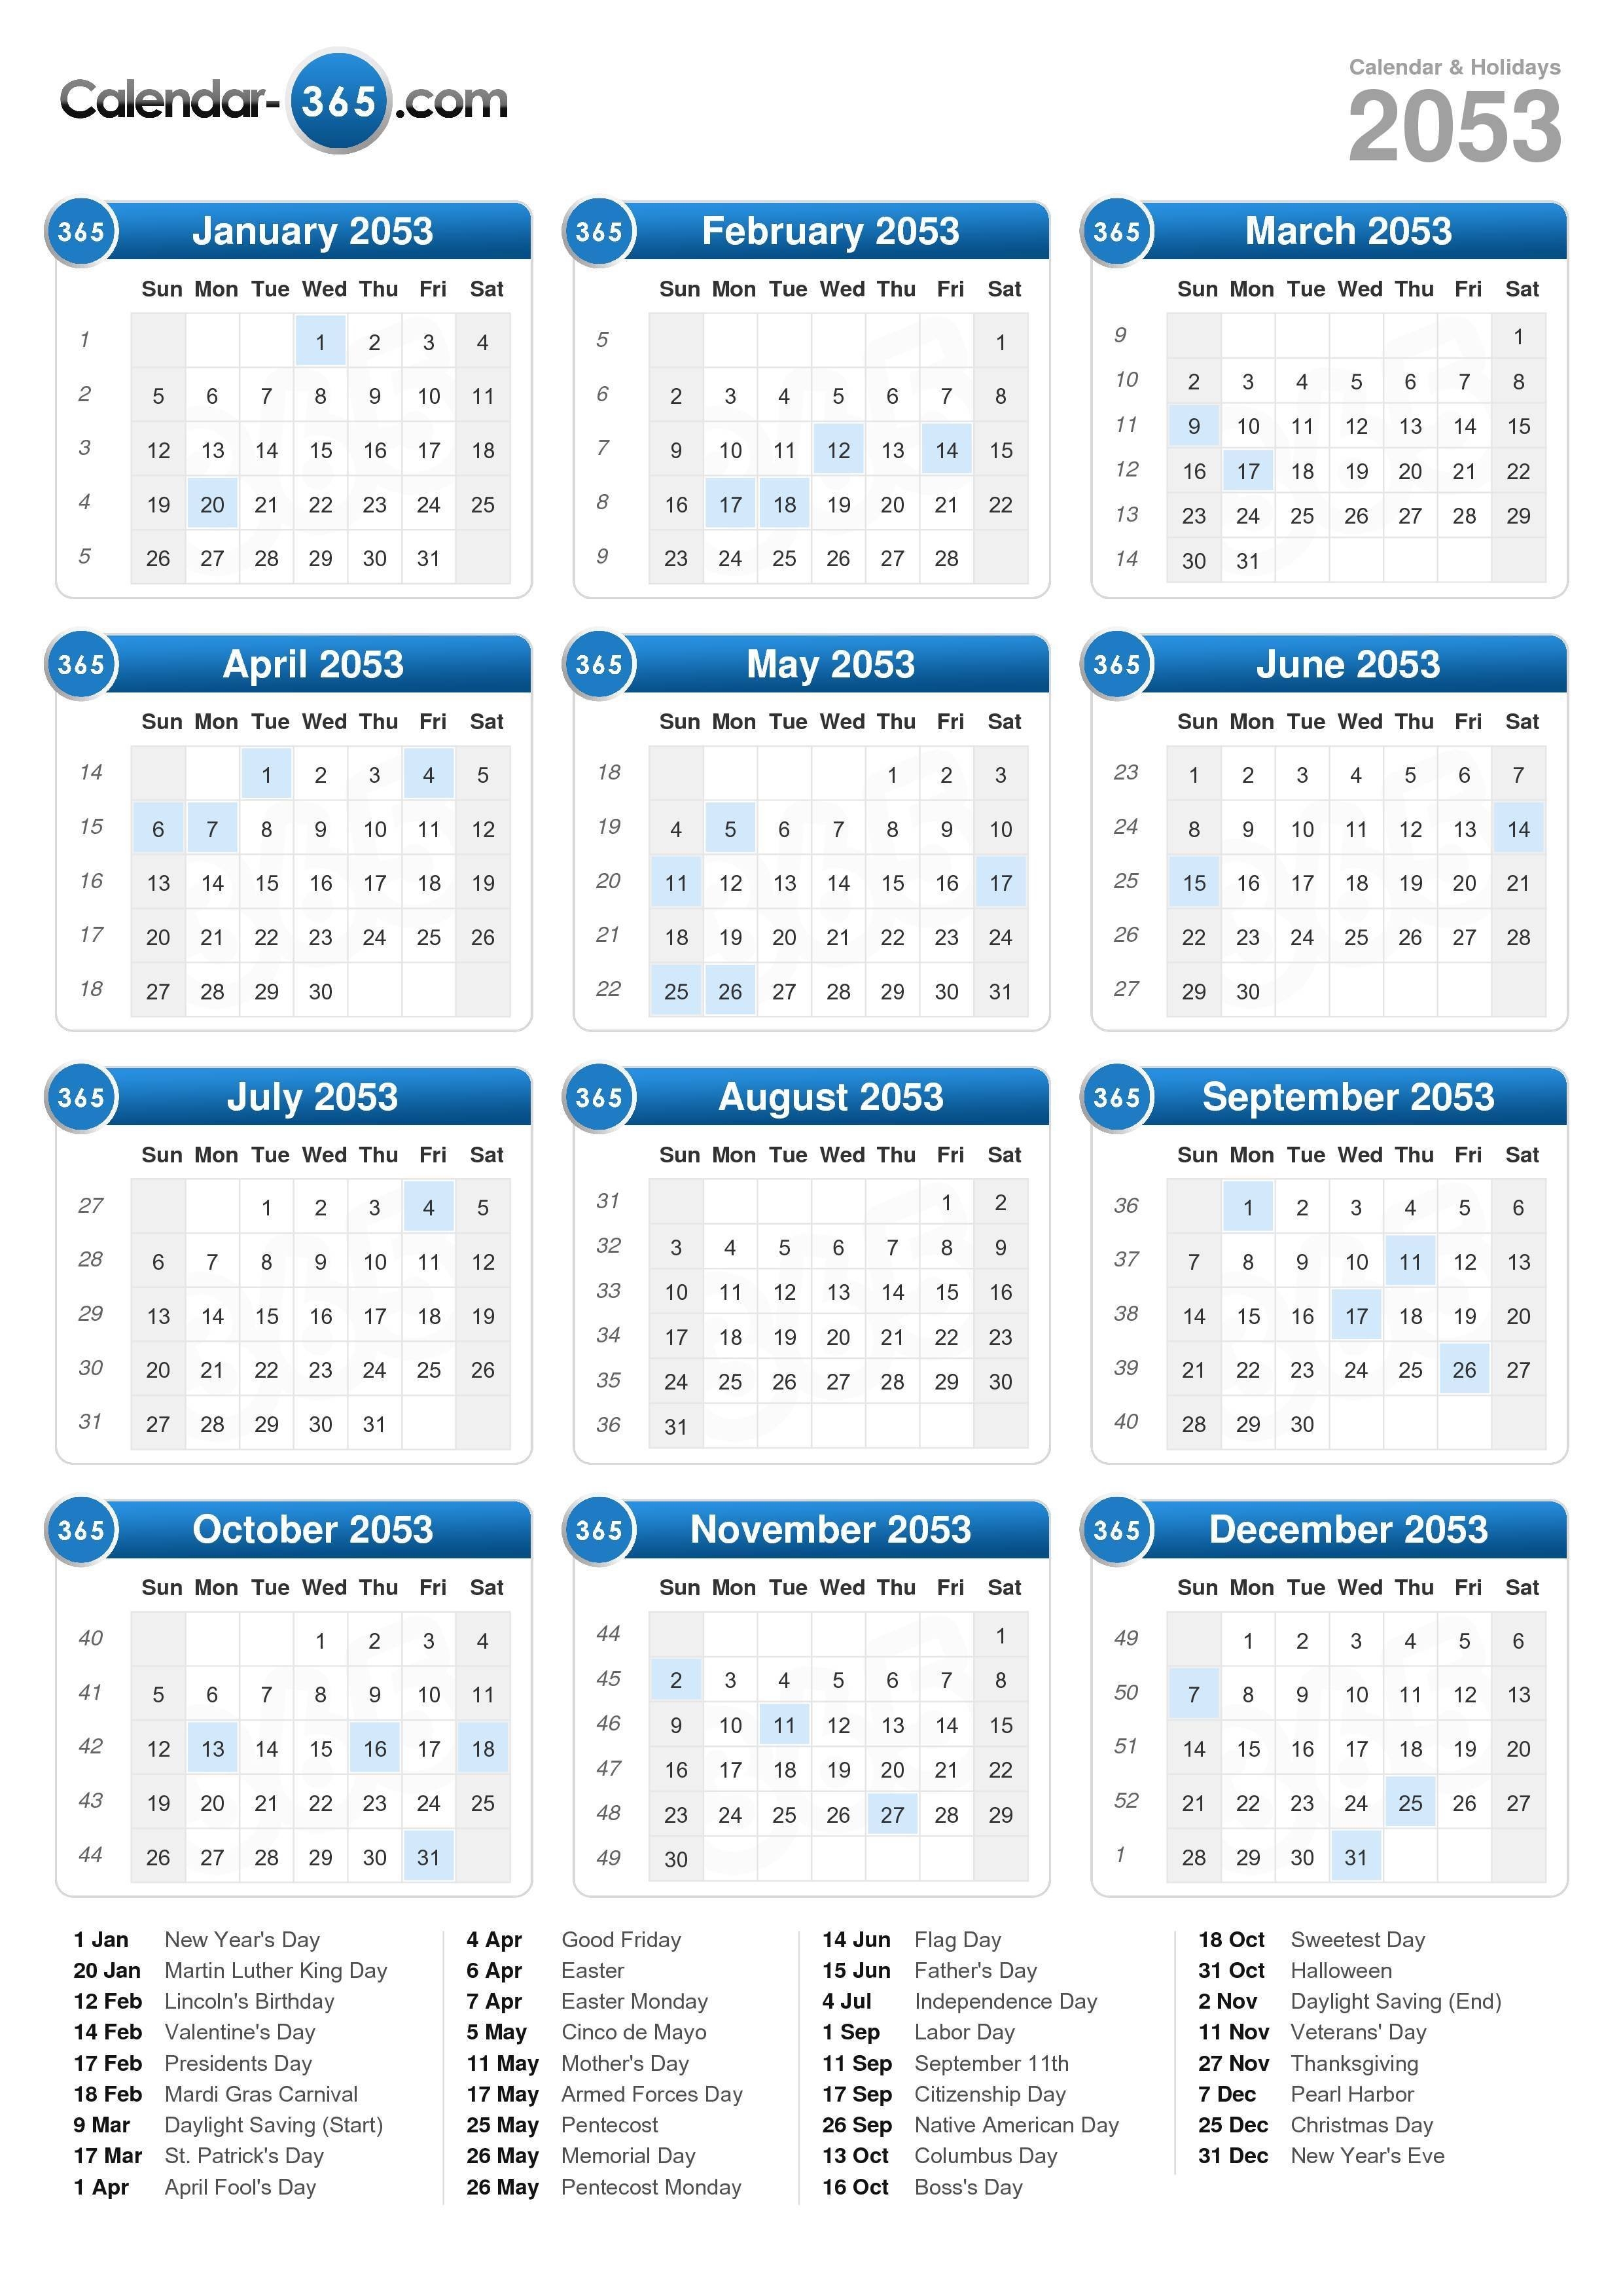 Download the 2053 Calendar with holidays . (Portrait format - 1 Page)